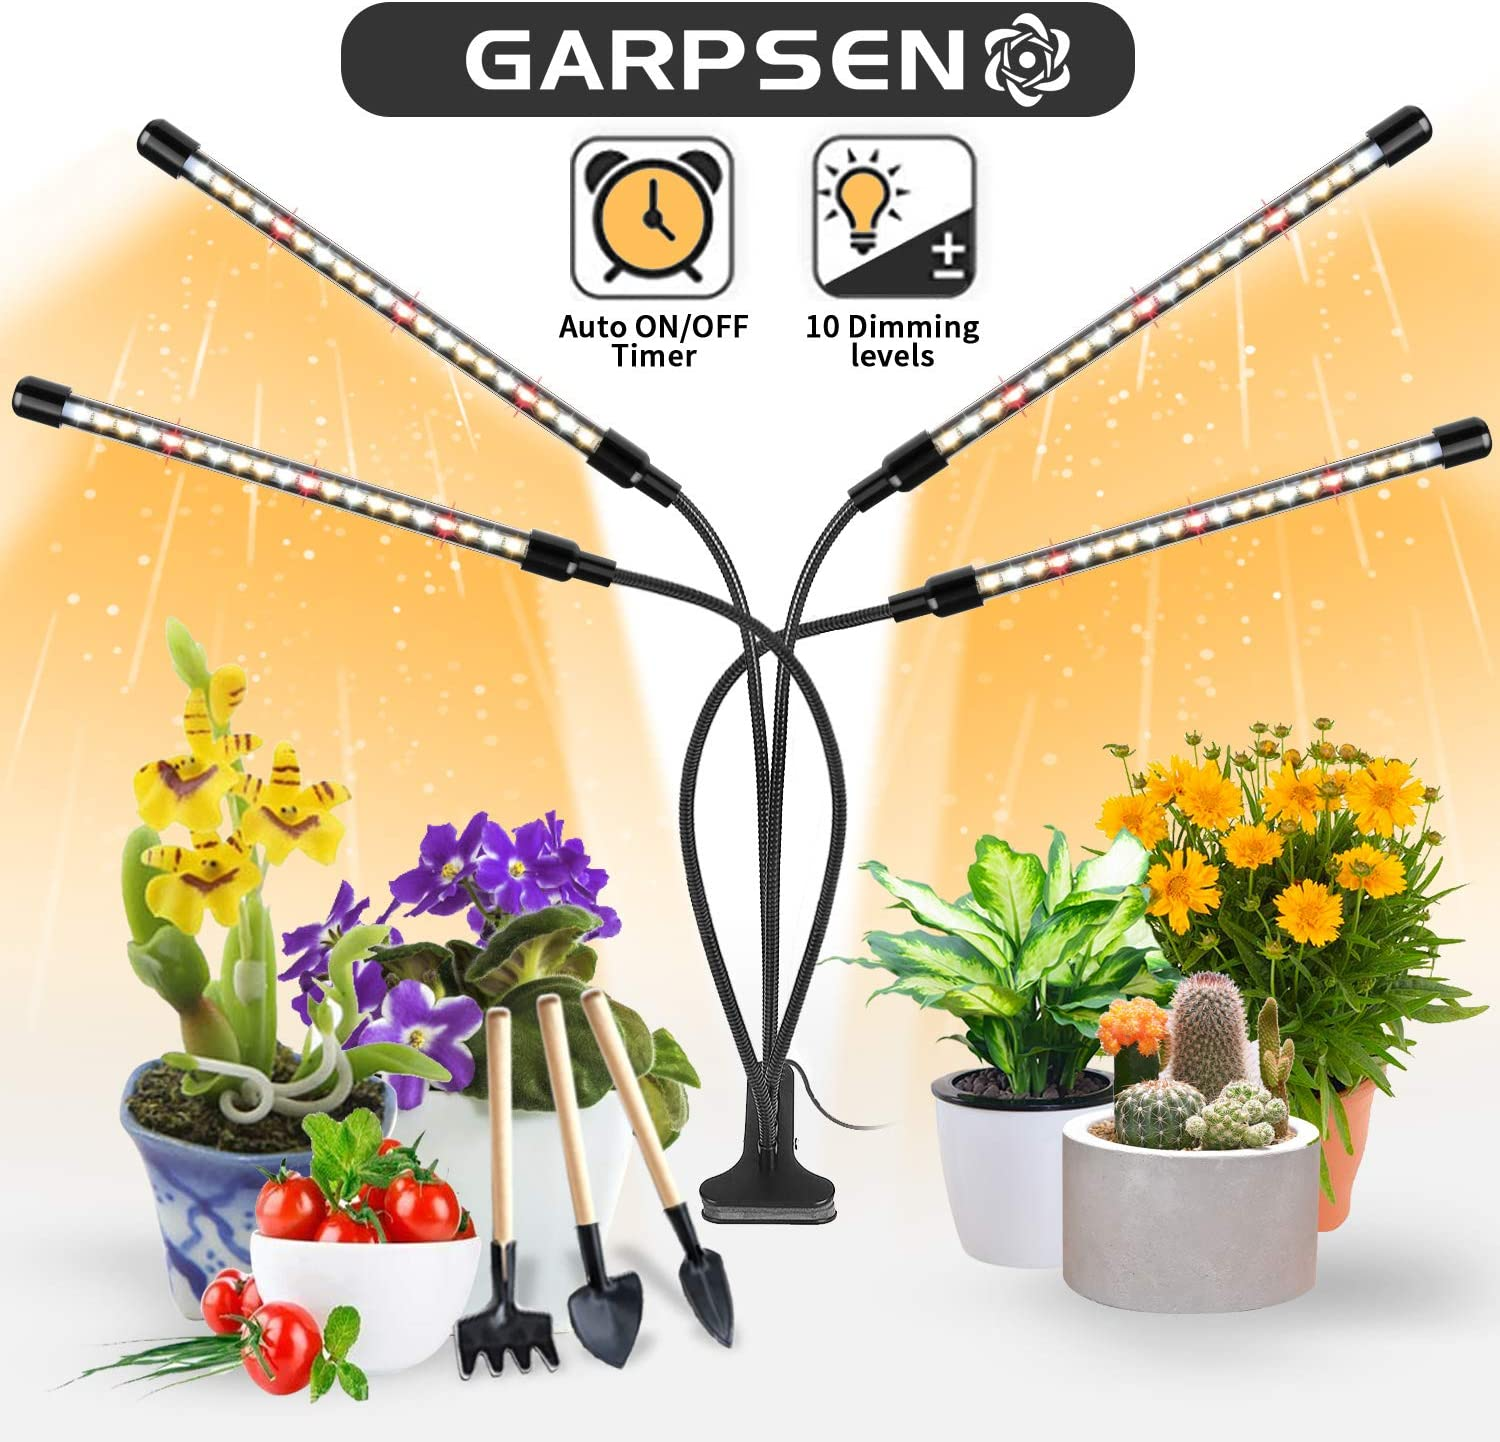 Garpsen 4 Head Sunlike Full-Spectrum LED Grow Light w